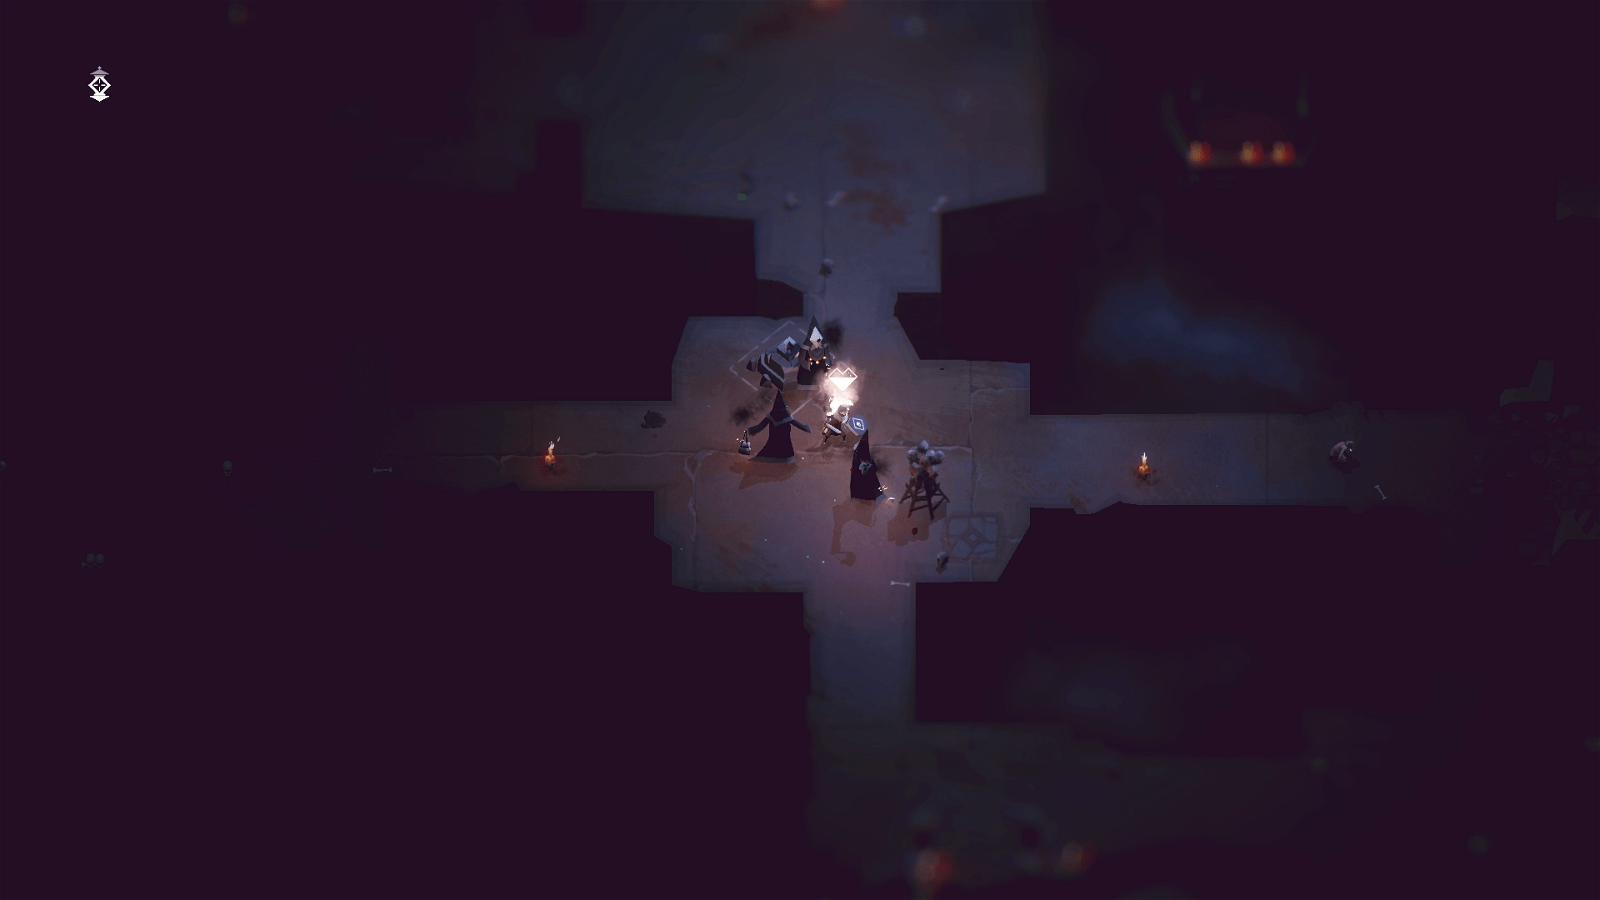 Capybara Innovates The Roguelike With Below 3